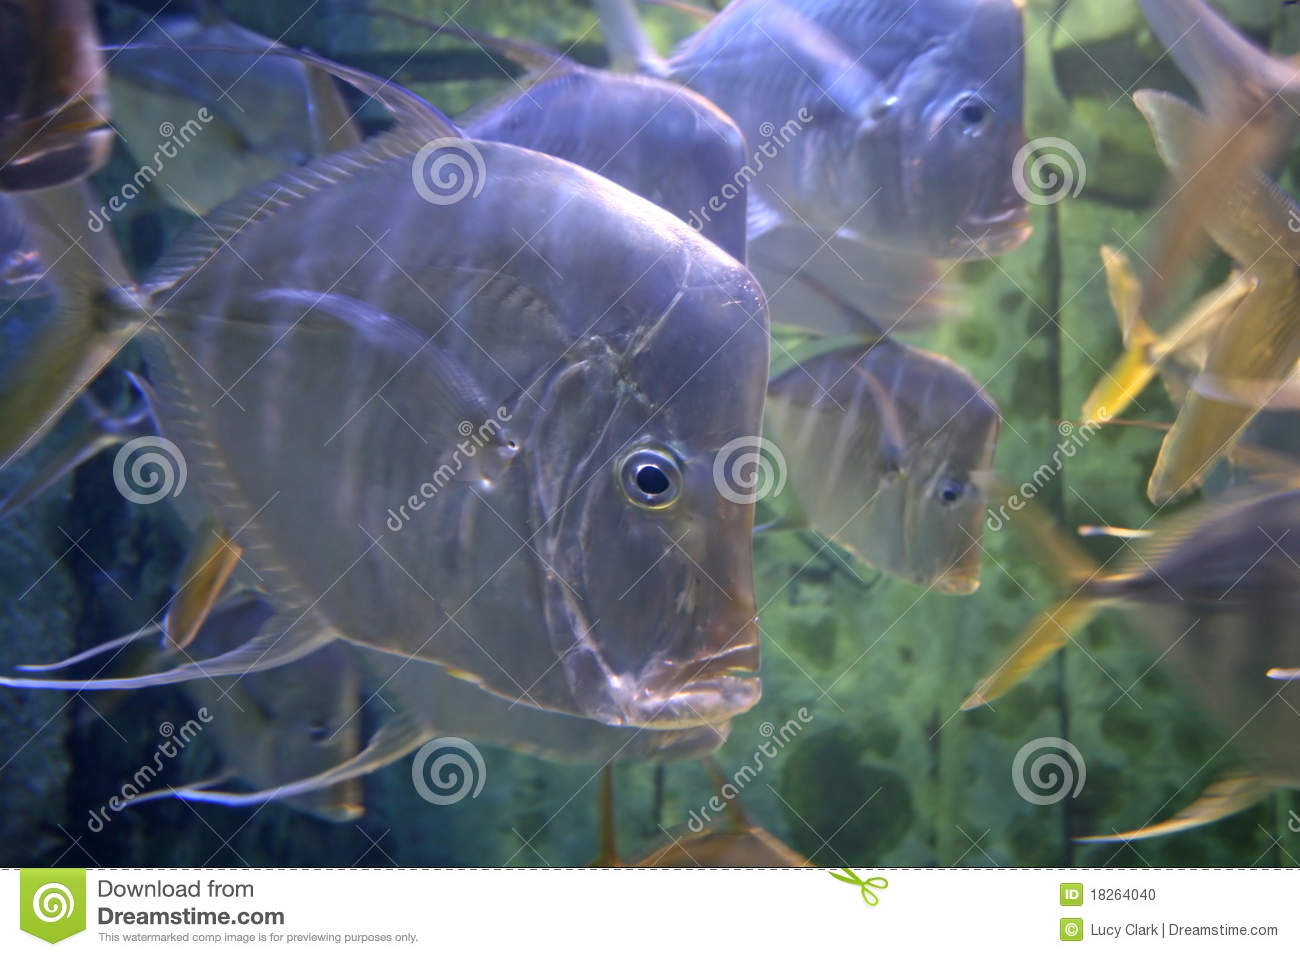 Swimming fish stock photo image 18264040 for Dream of fish swimming